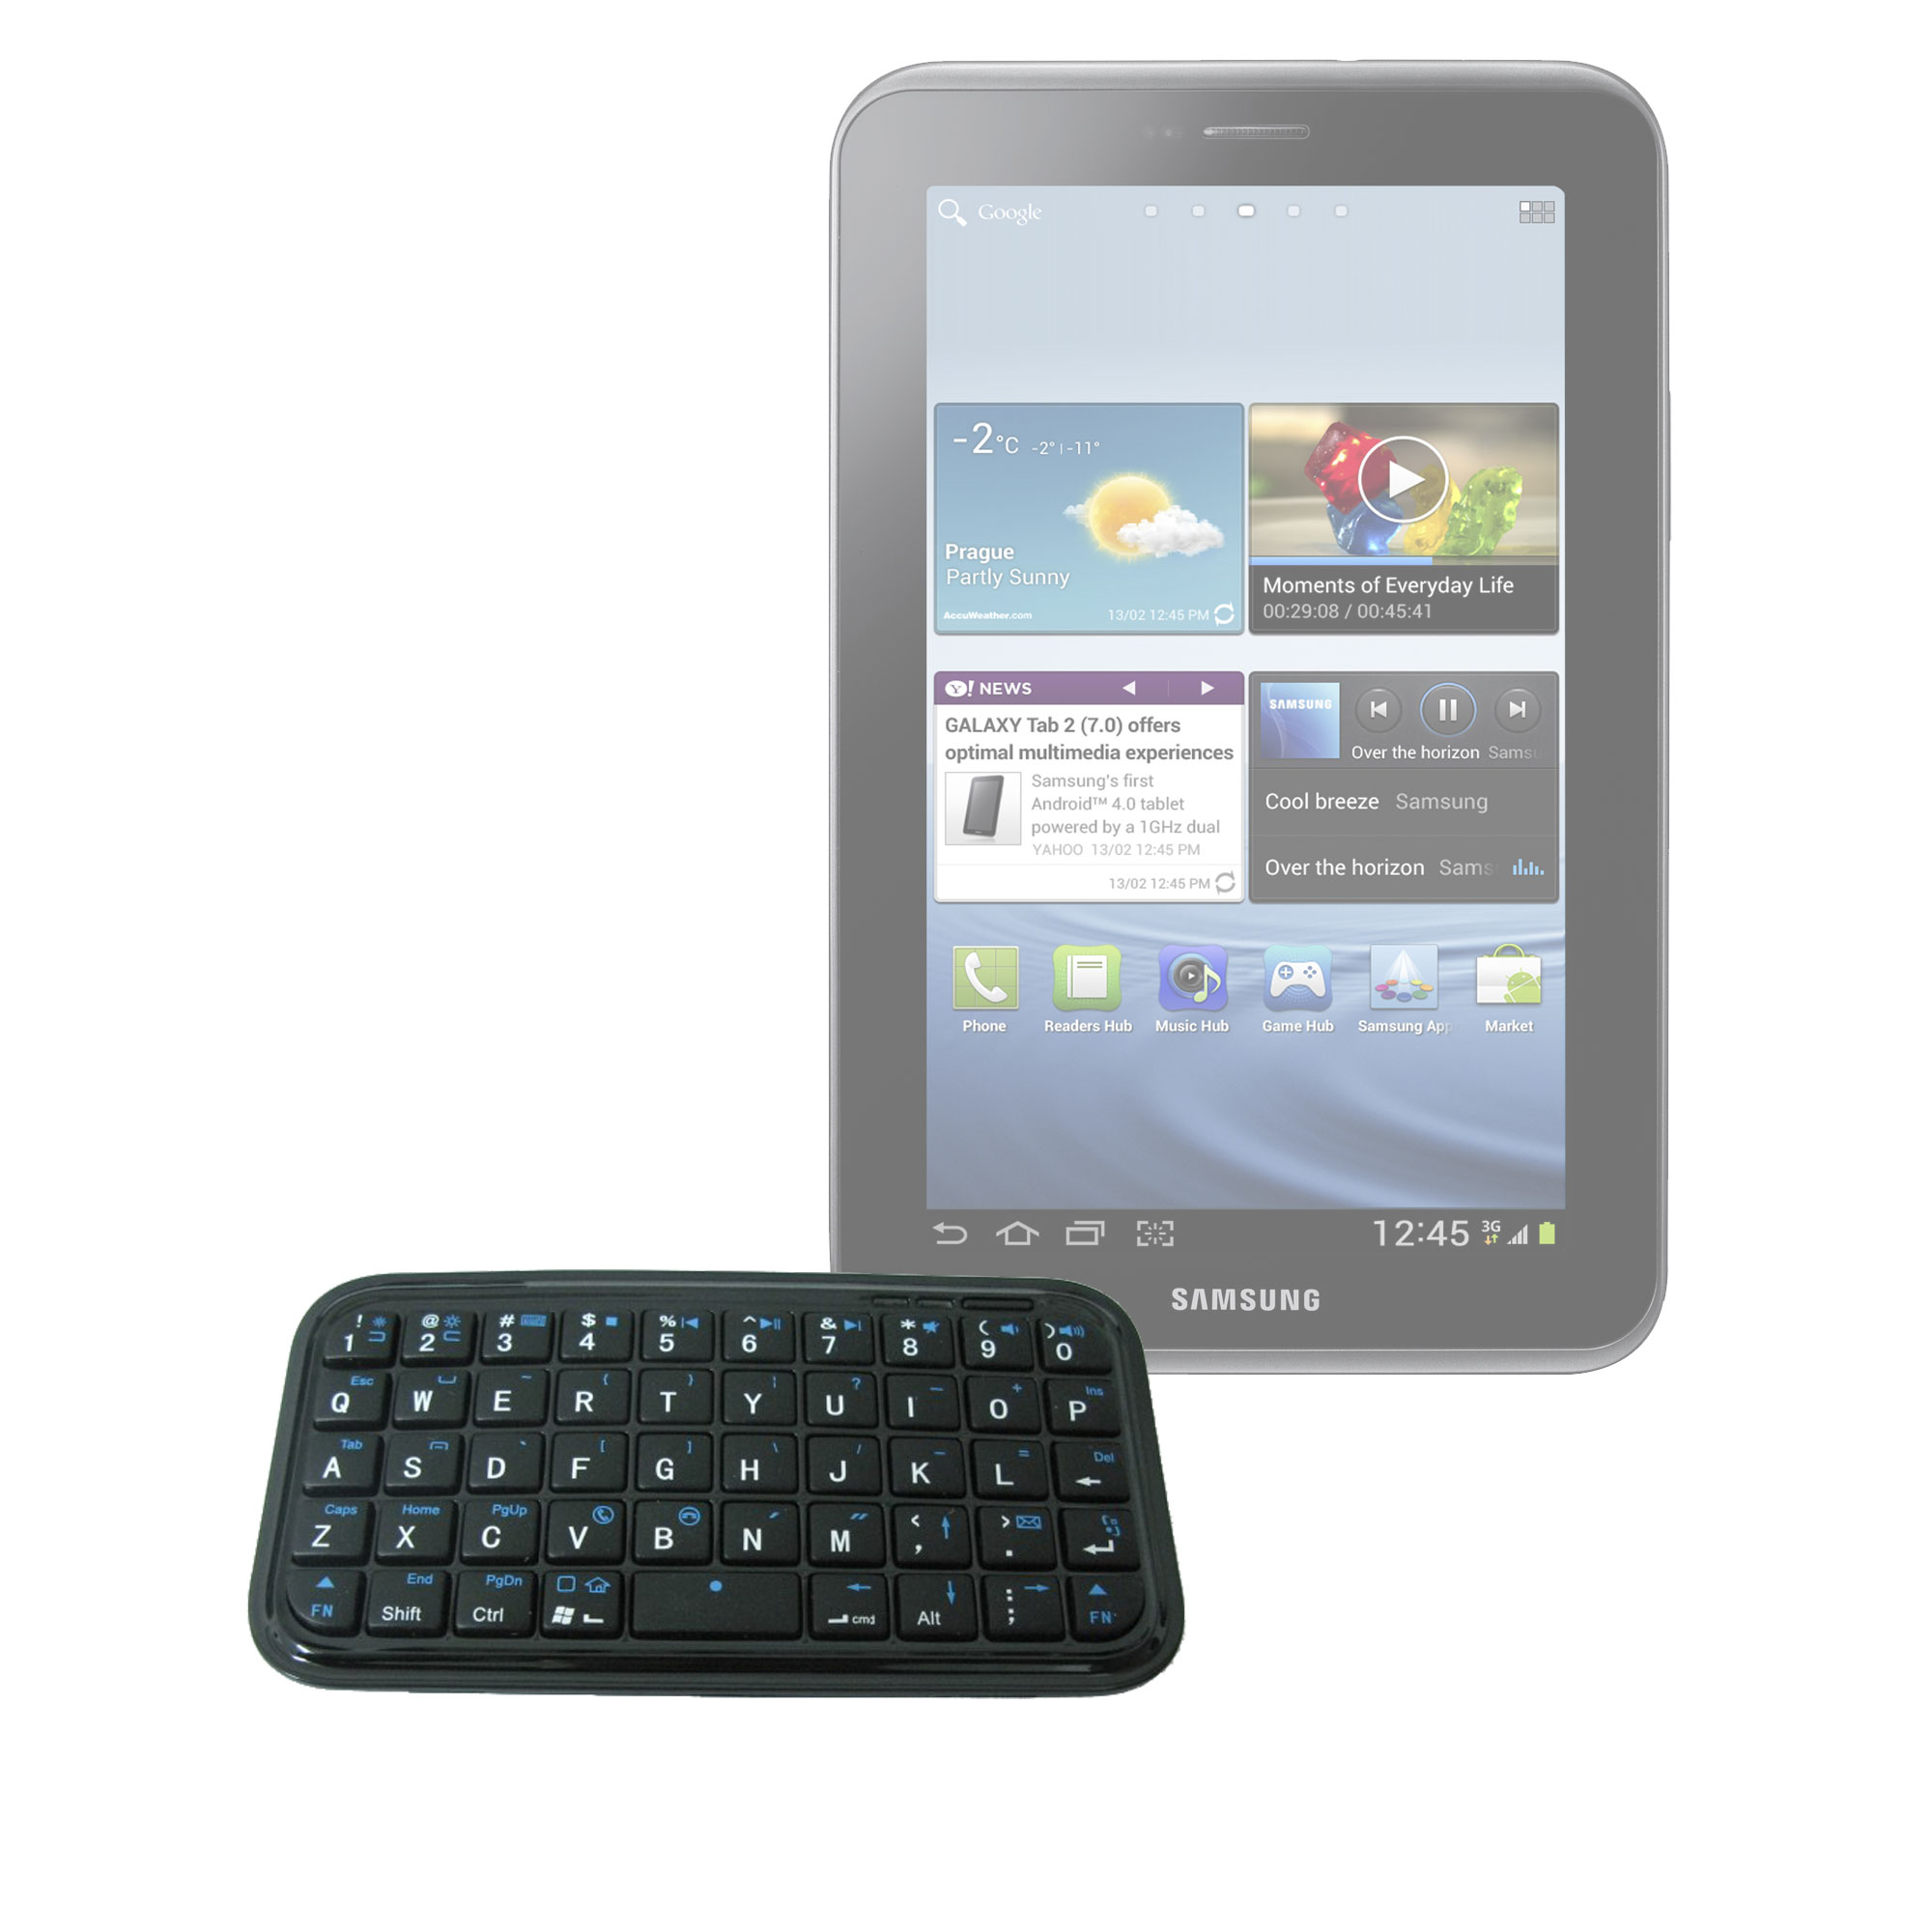 clavier mini bluetooth sans fil pour tablette samsung galaxy tab 2 7 0 ebay. Black Bedroom Furniture Sets. Home Design Ideas